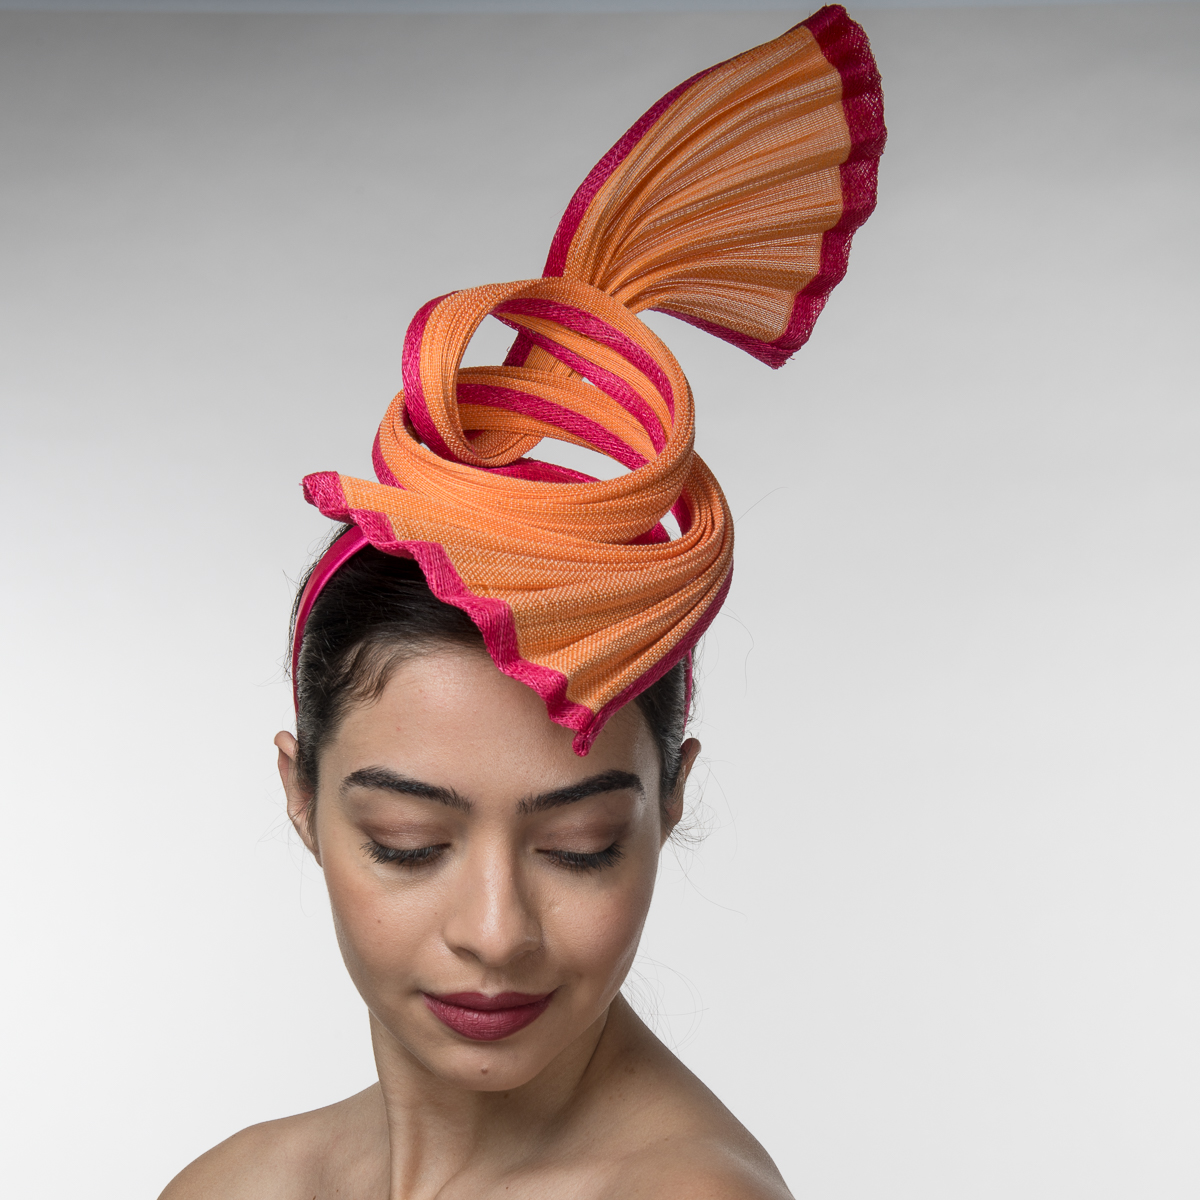 Orange-Fuchsia Peacock Pleated Headband Fascinator Cocktail  Hats-5755H-OR.FU- Sun Yorkos  ff0c05c82a2